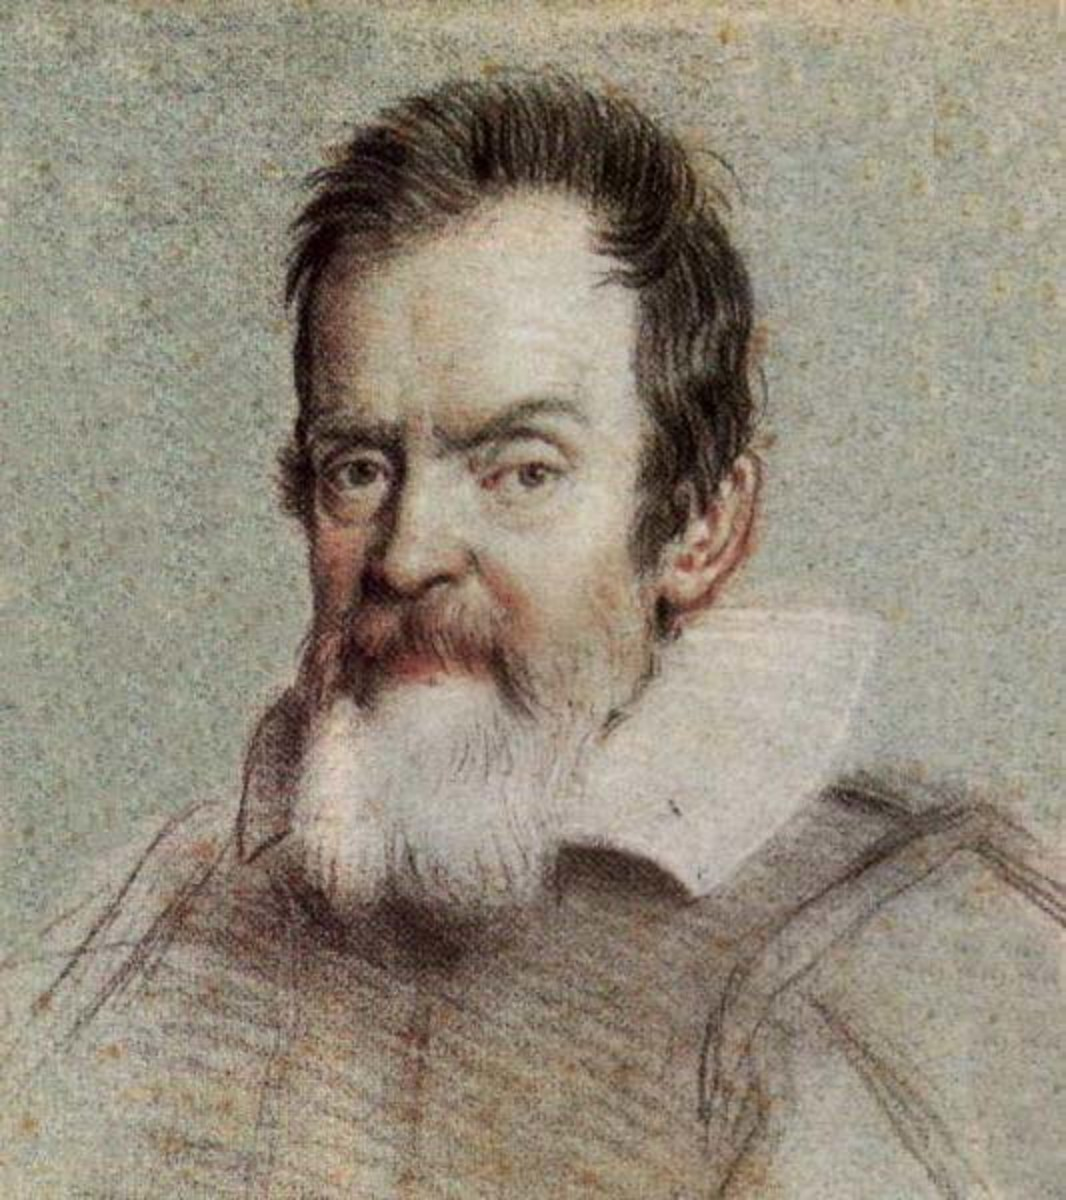 Pictured: Galileo Galilei. The dawn of reason brought about by The Enlightenment ended the hysteria of the massive witch hunts that radiated across Europe.